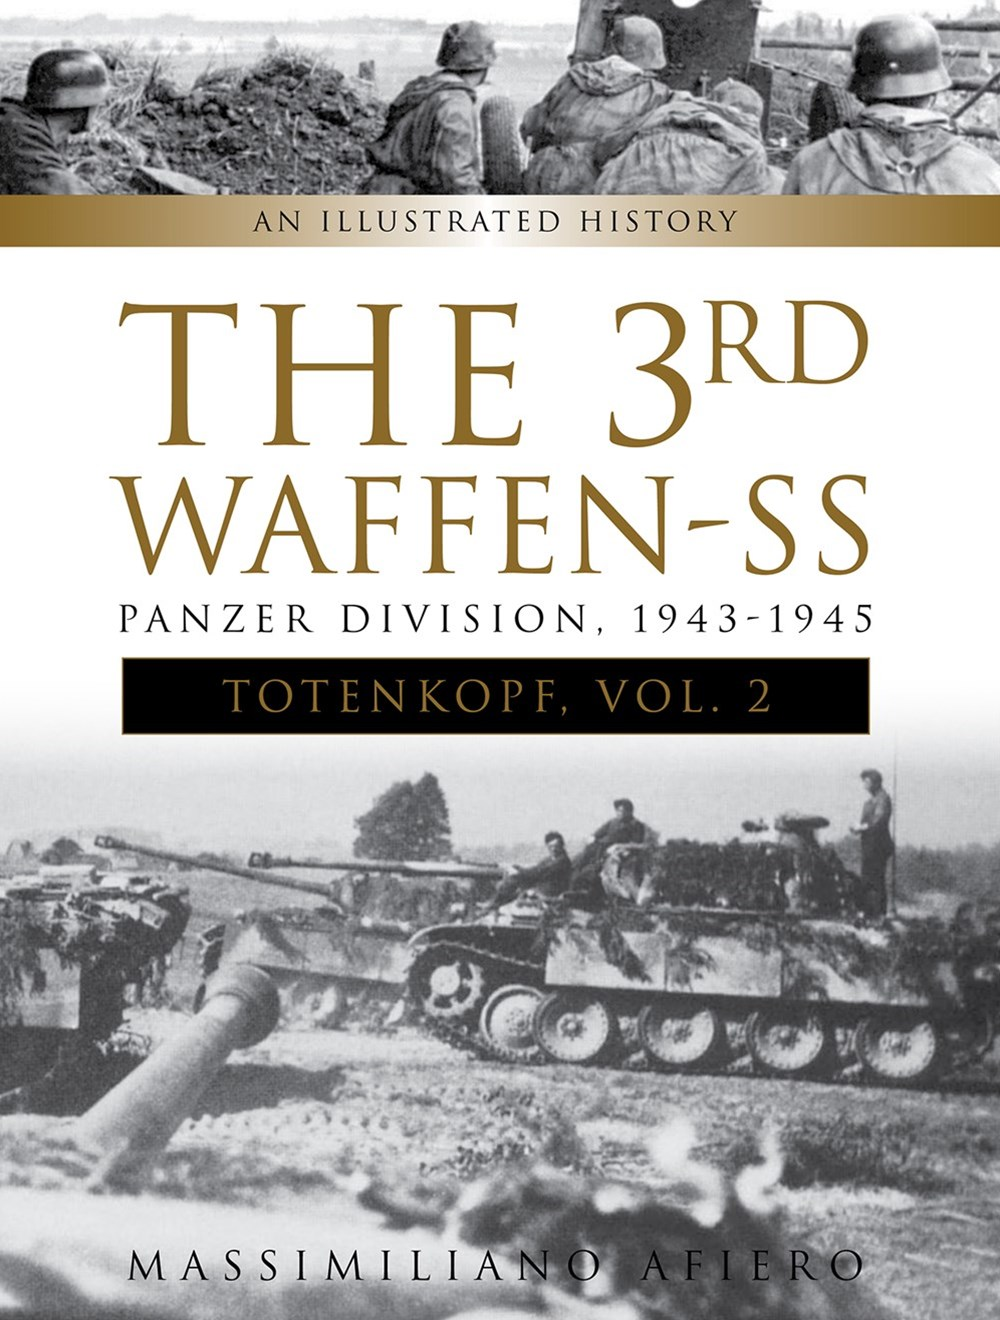 3rd Waffen-SS Panzer Division &quote;Totenkopf&quote;, 1943-1945: An Illustrated History, Vol. 2